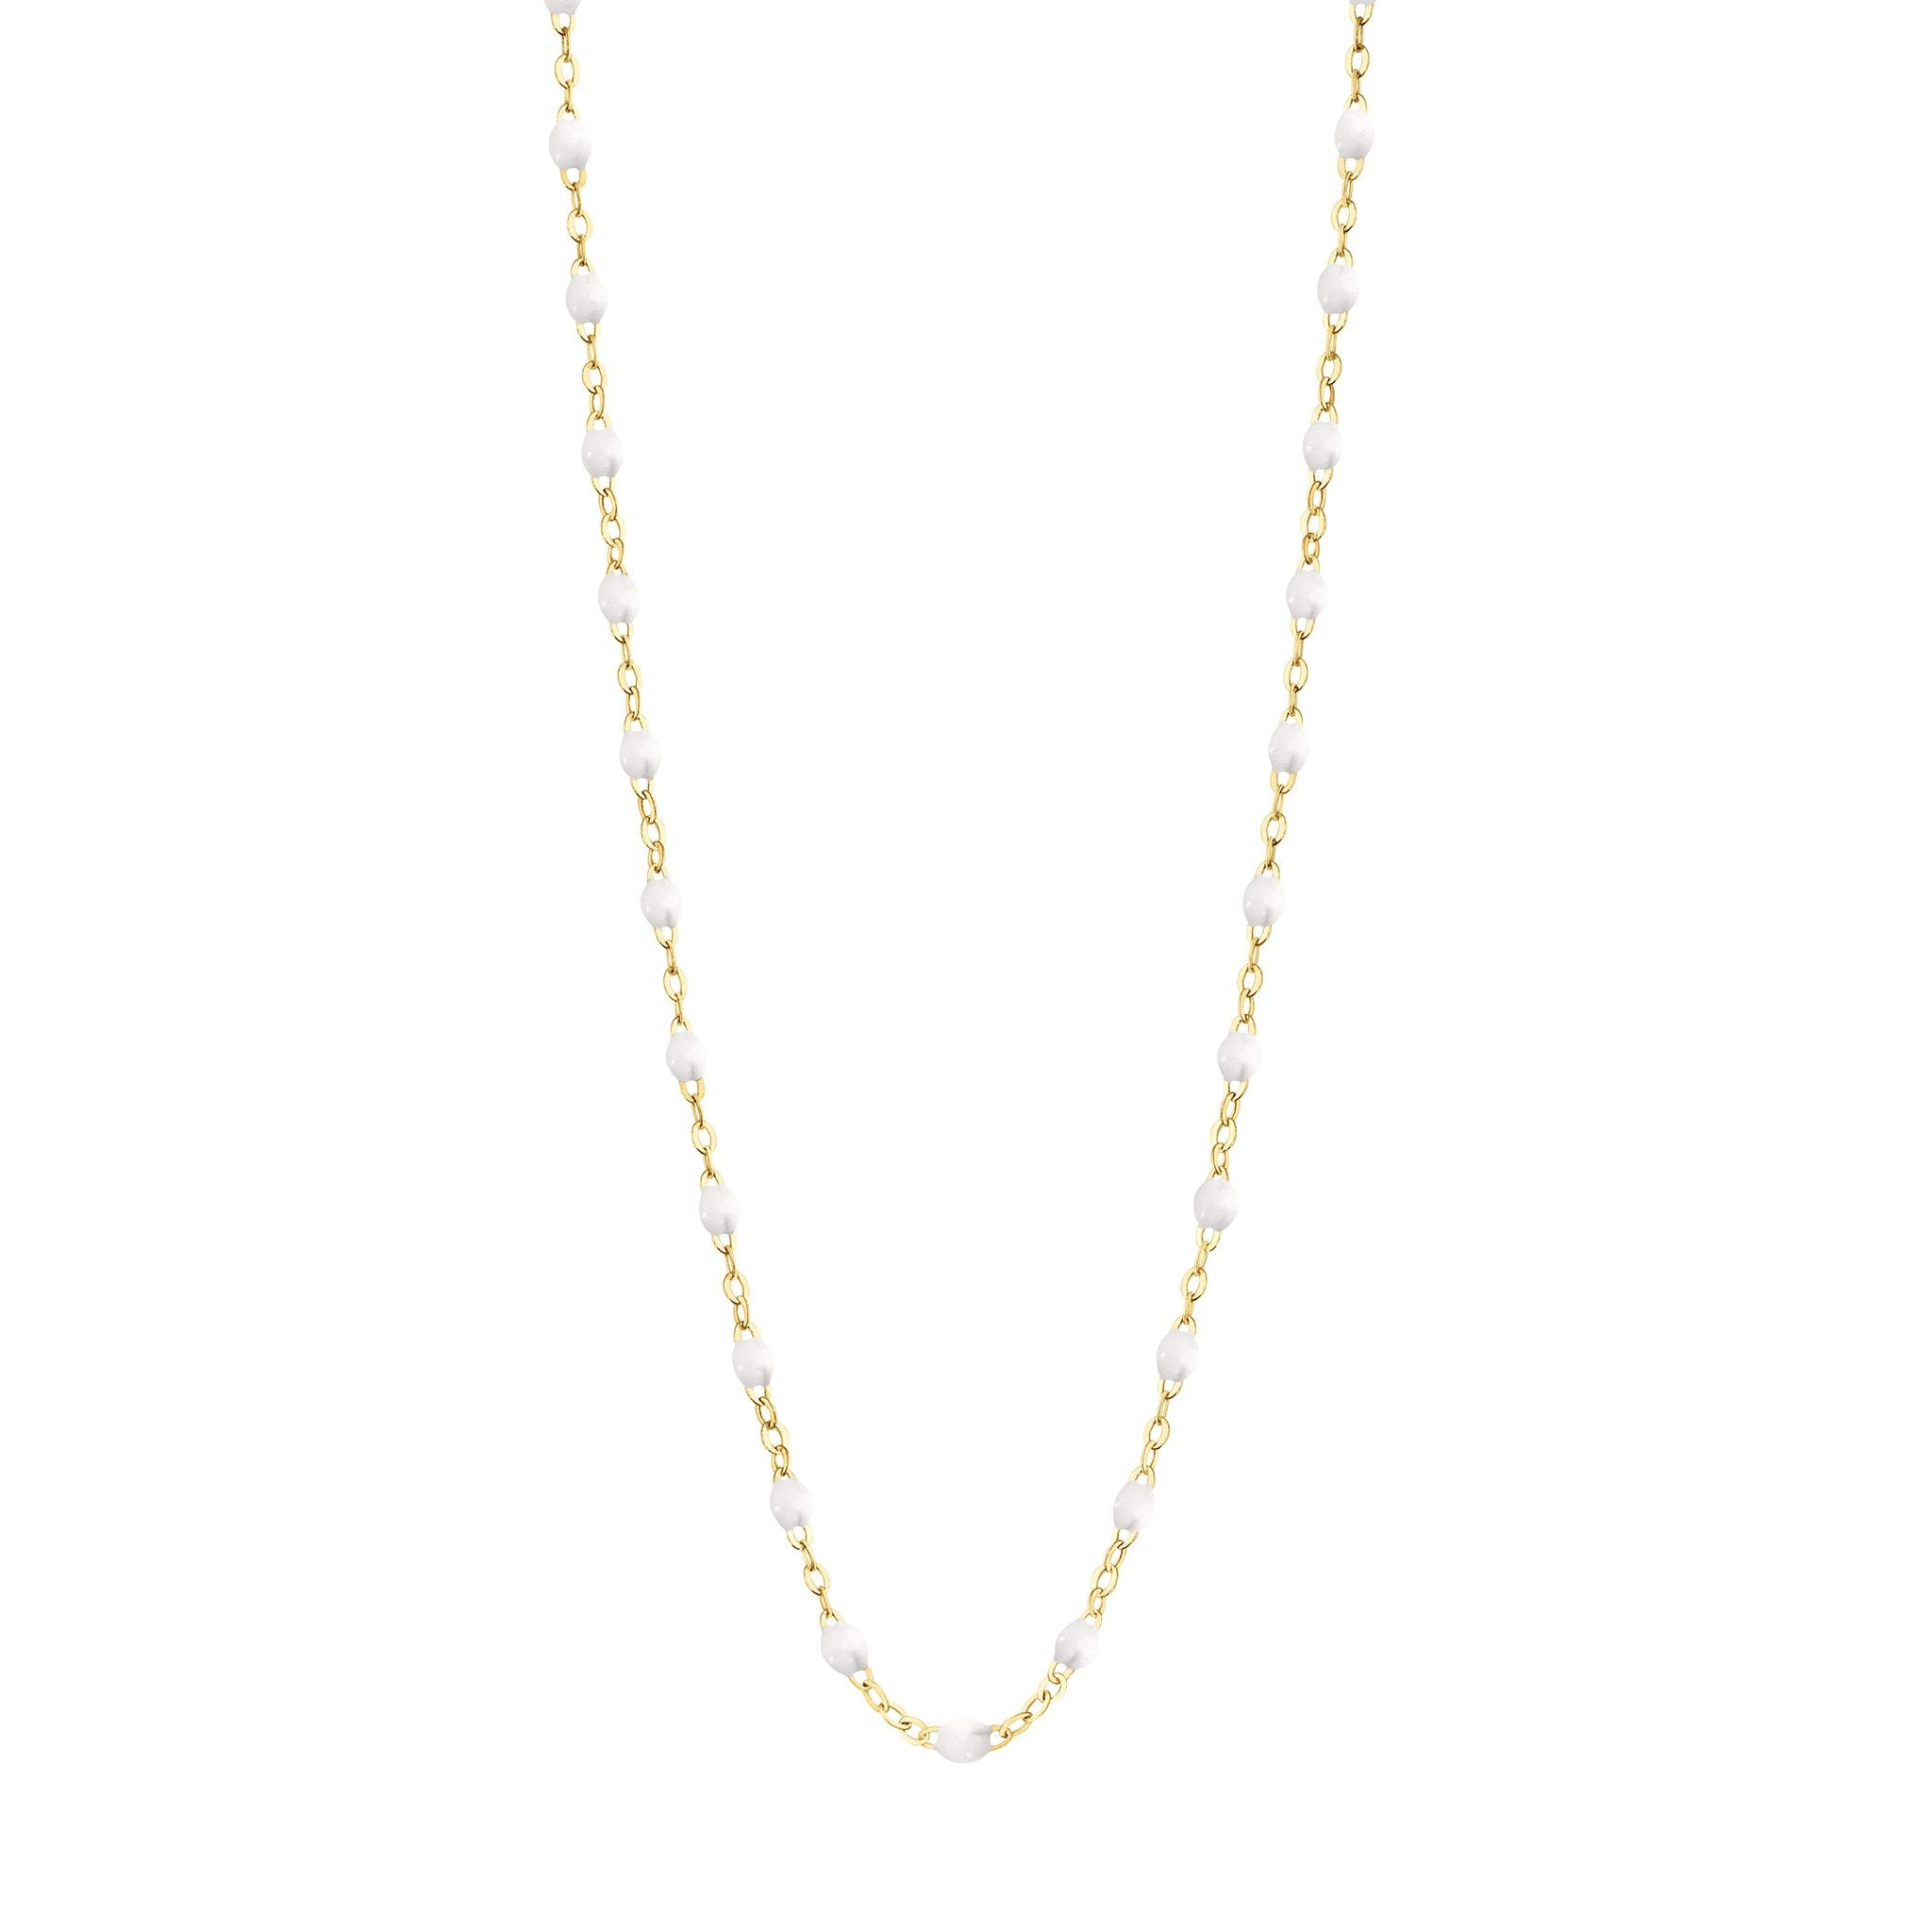 Gigi Clozeau - Classic Gigi White necklace, Yellow Gold, 19.7